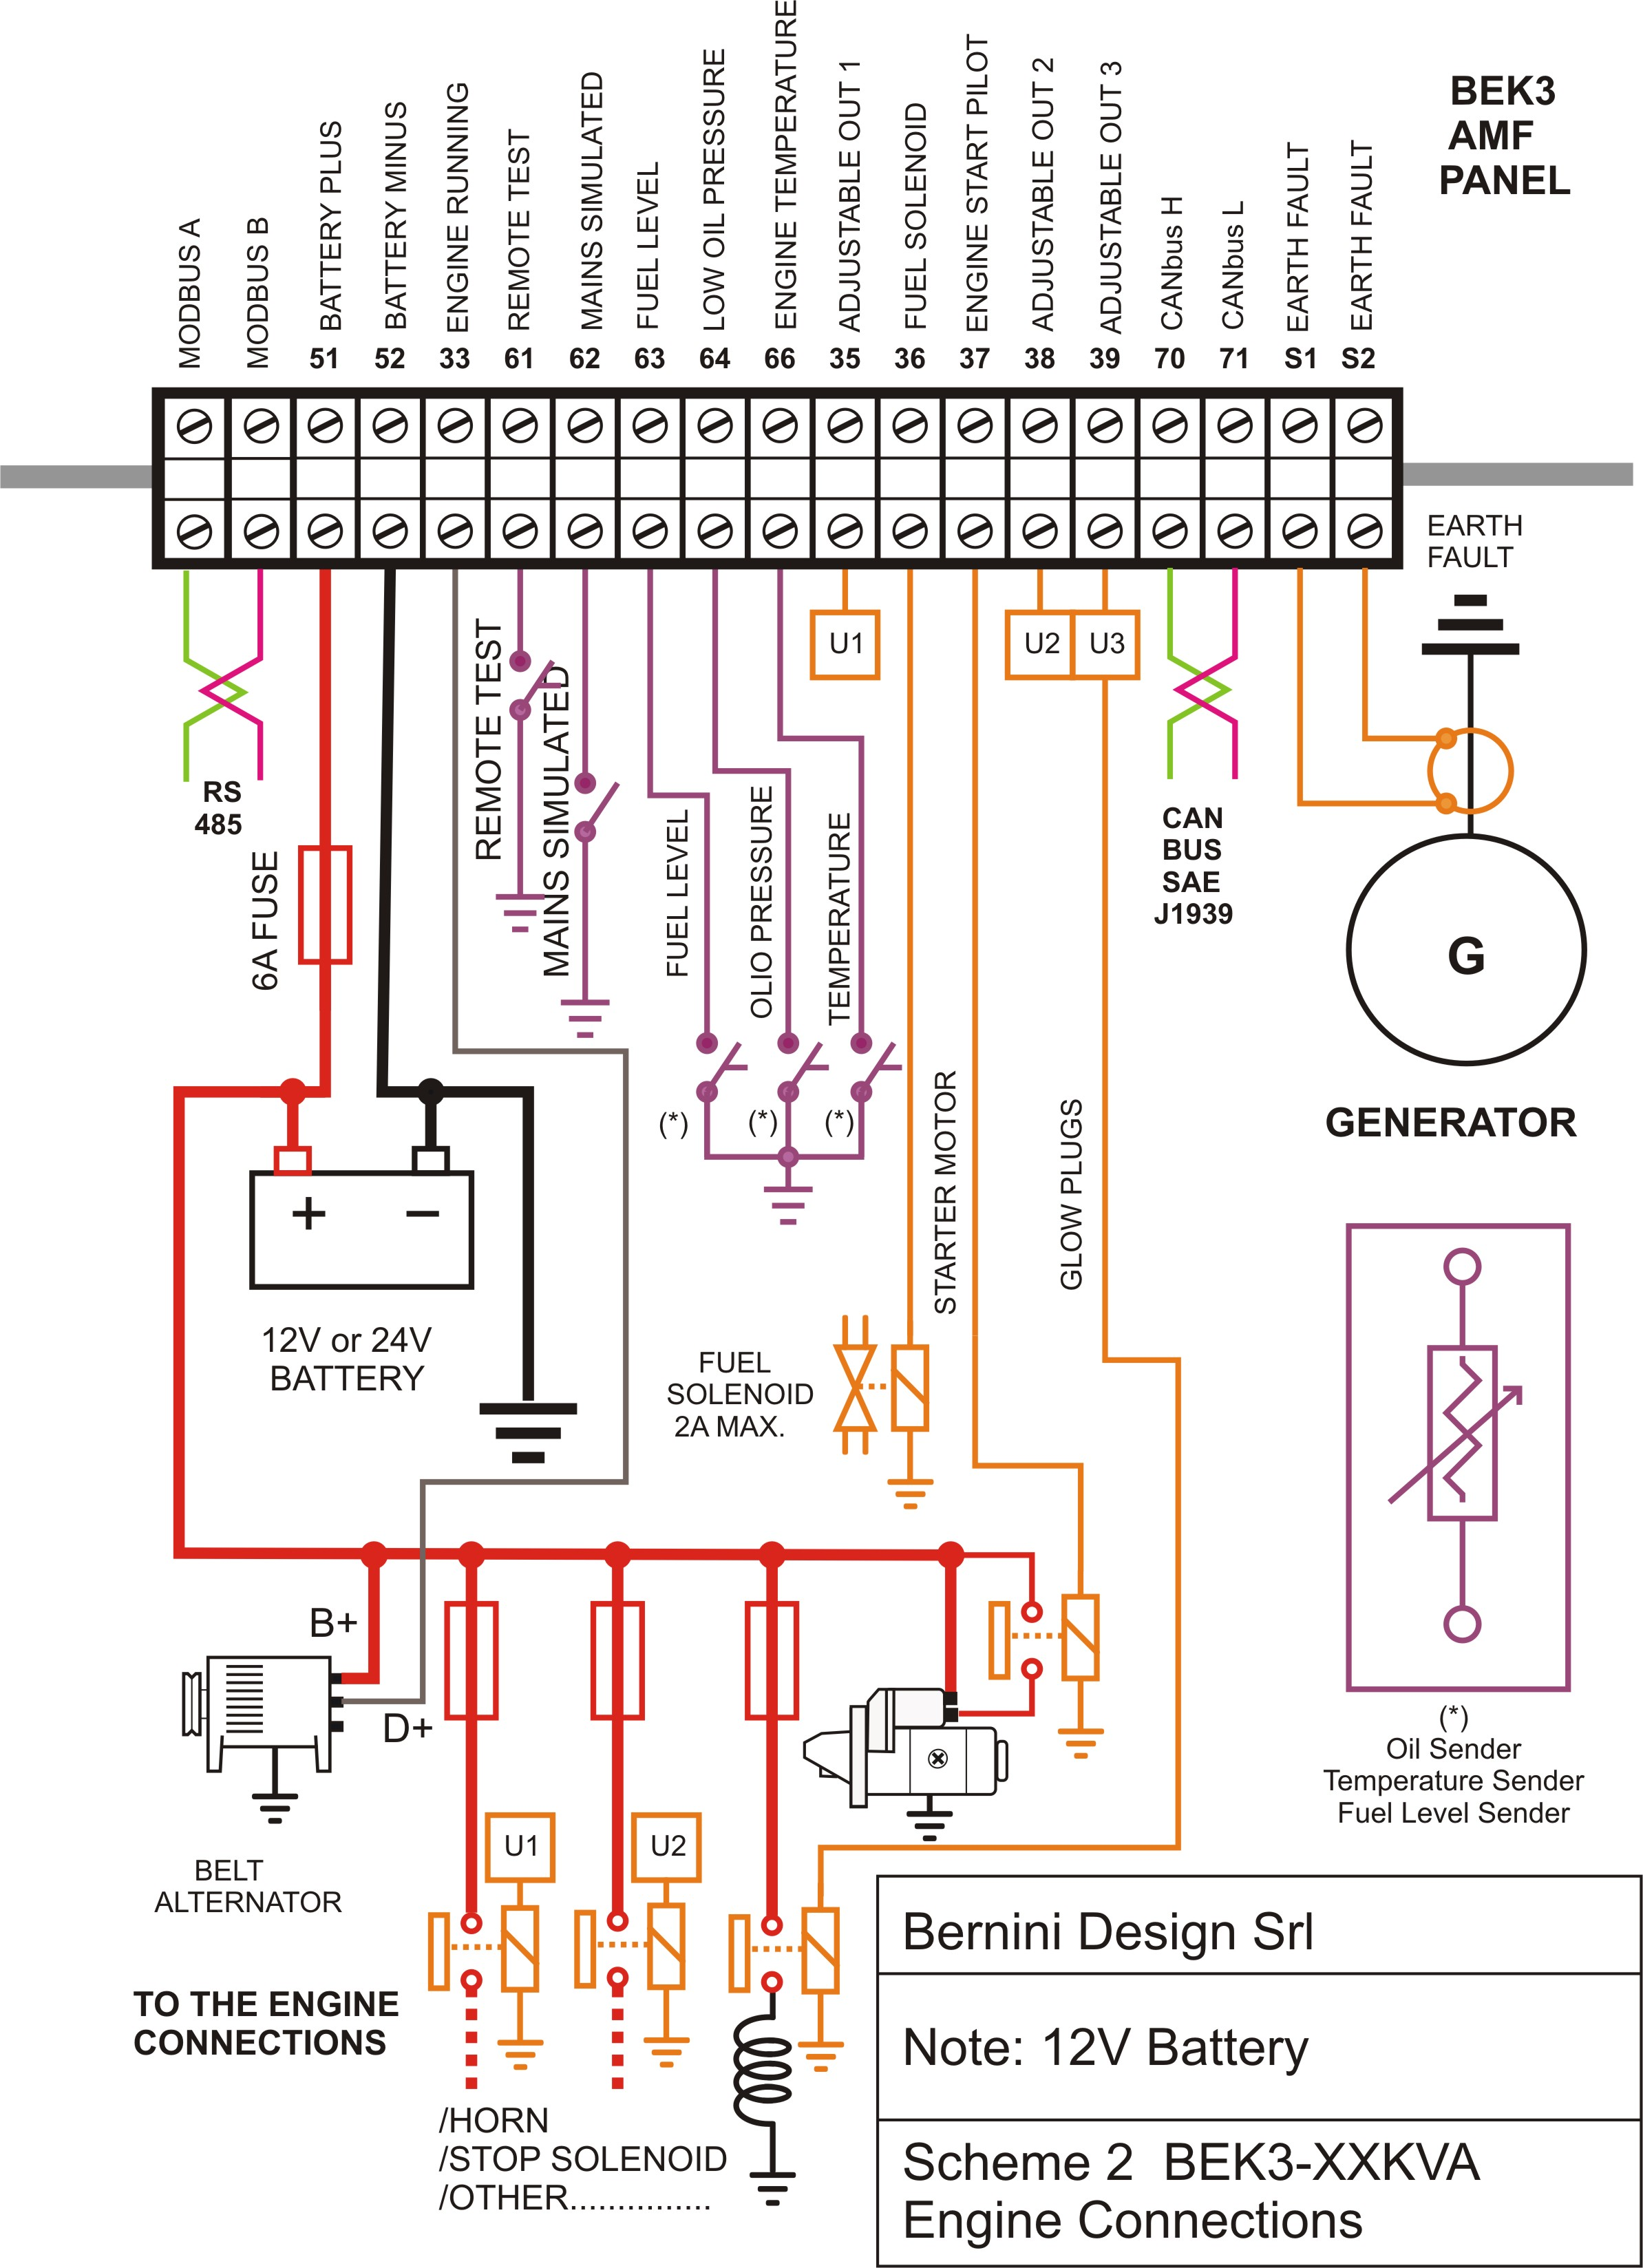 Diesel Generator Control Panel Wiring Diagram Engine Connections wiring diagram tool wiring color coding \u2022 free wiring diagrams 30 Amp Relay Wiring Diagram at virtualis.co